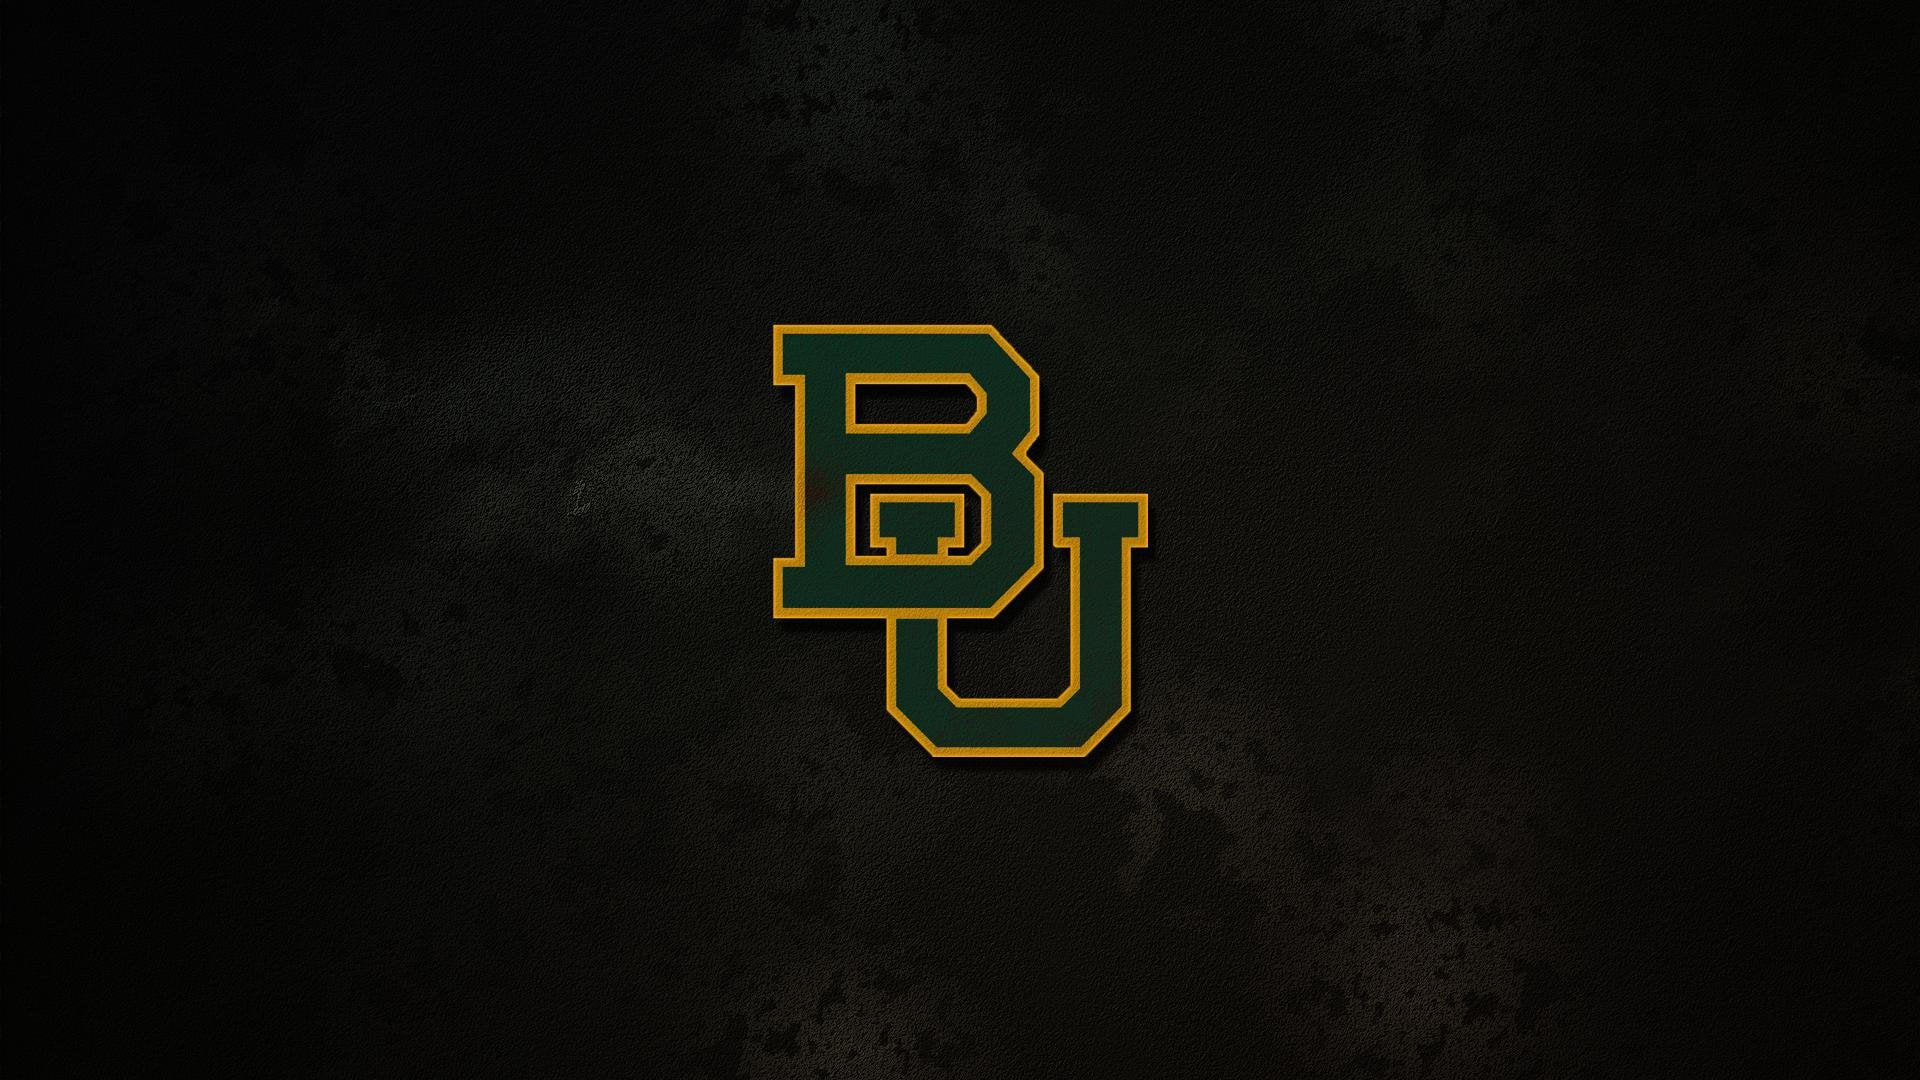 Simple but cool Baylor wallpaper made by uMizzouDude and posted 1920x1080